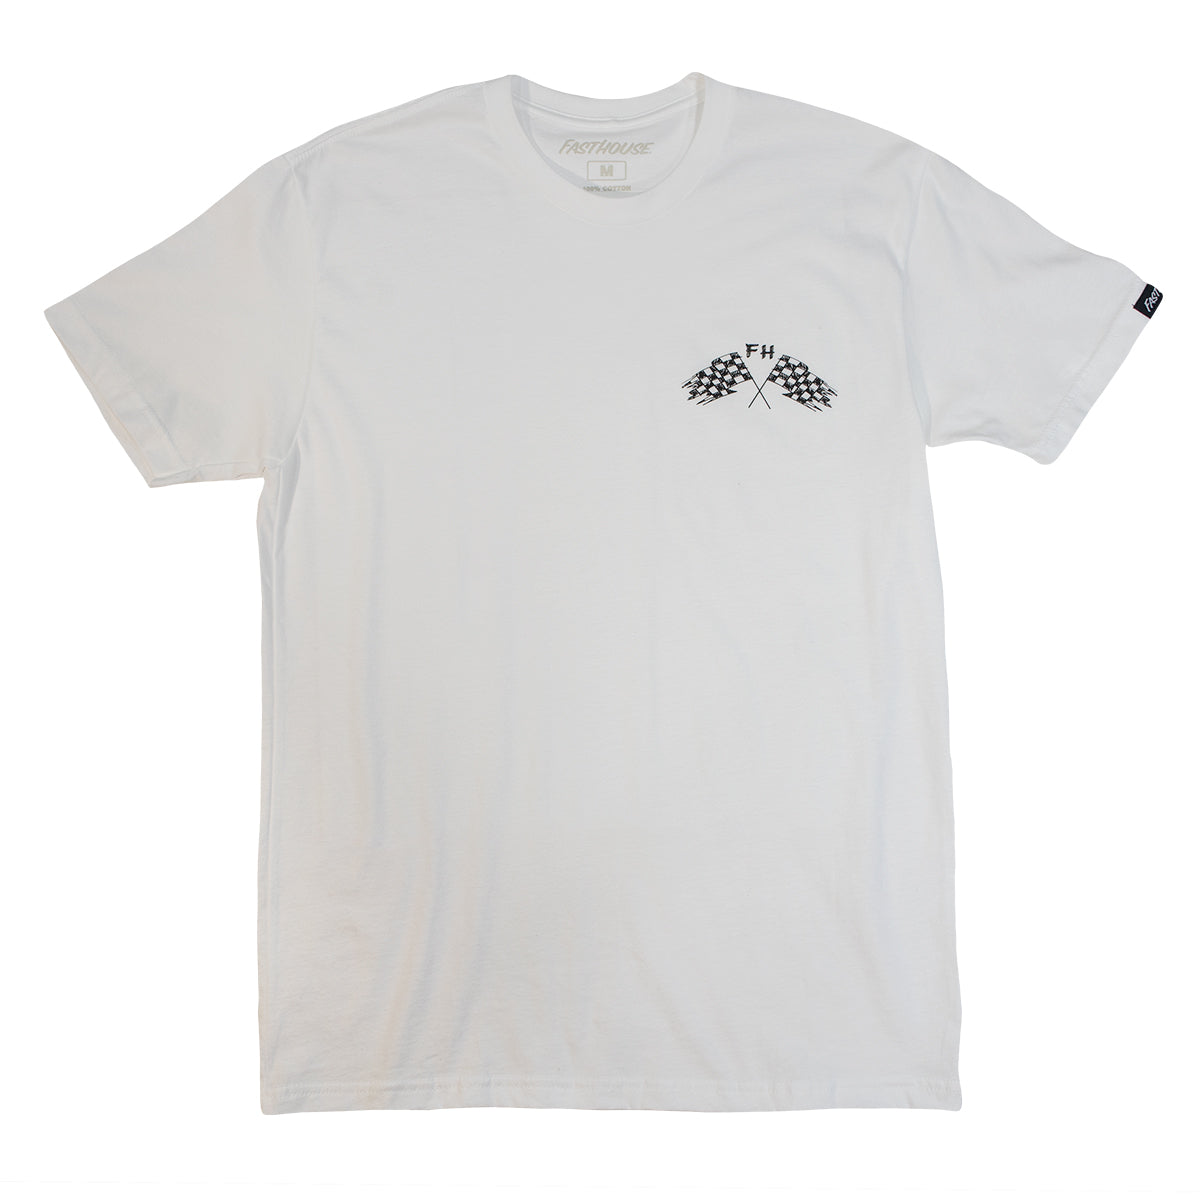 Fasthouse - Finish Line Tee - White